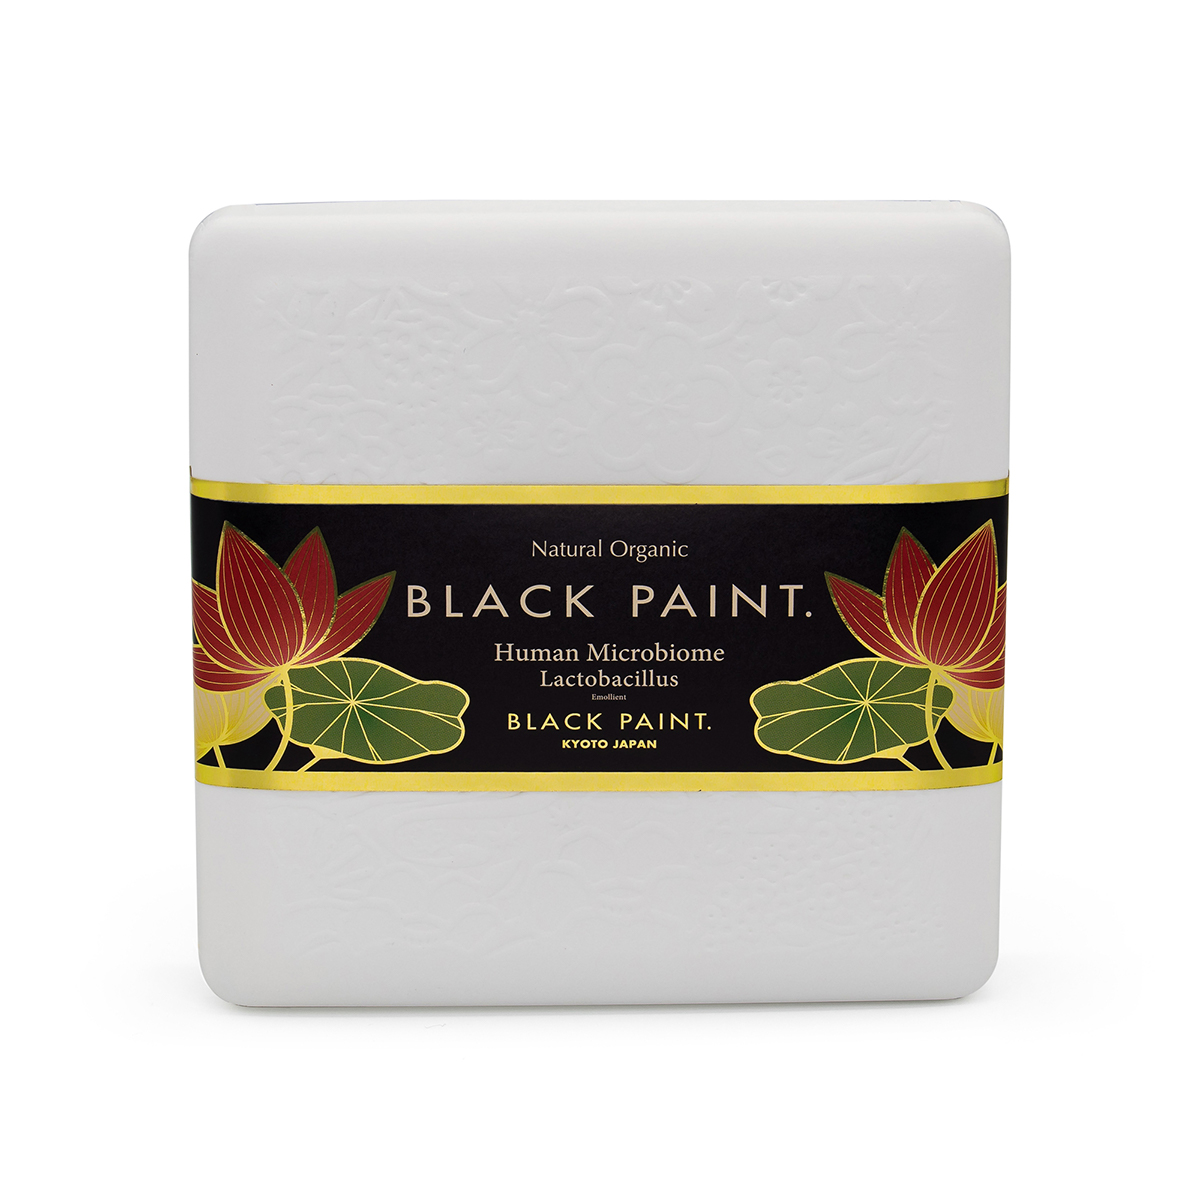 Black Paint Soap 60g with Human Microbiome - front